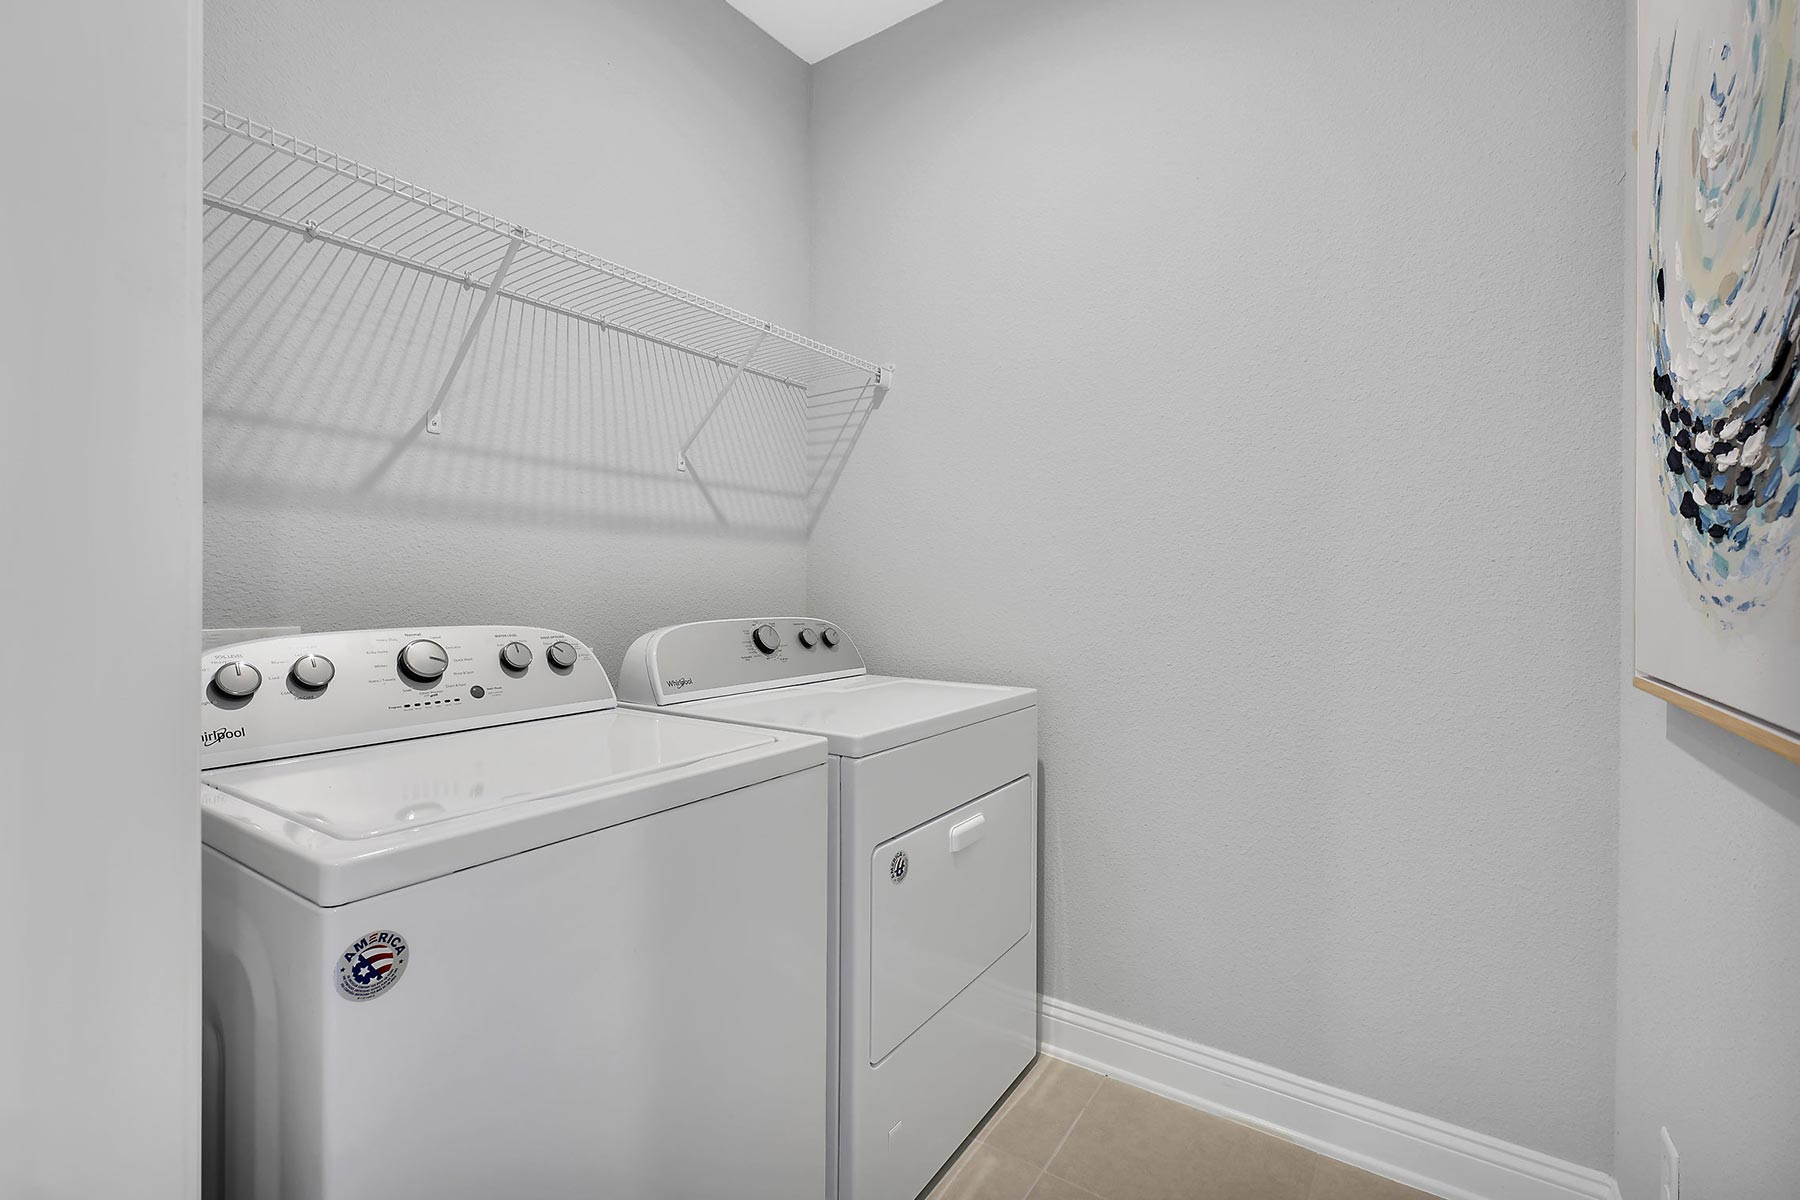 Rialta Plan Laundry at Pablo Cove in Jacksonville Florida by Mattamy Homes